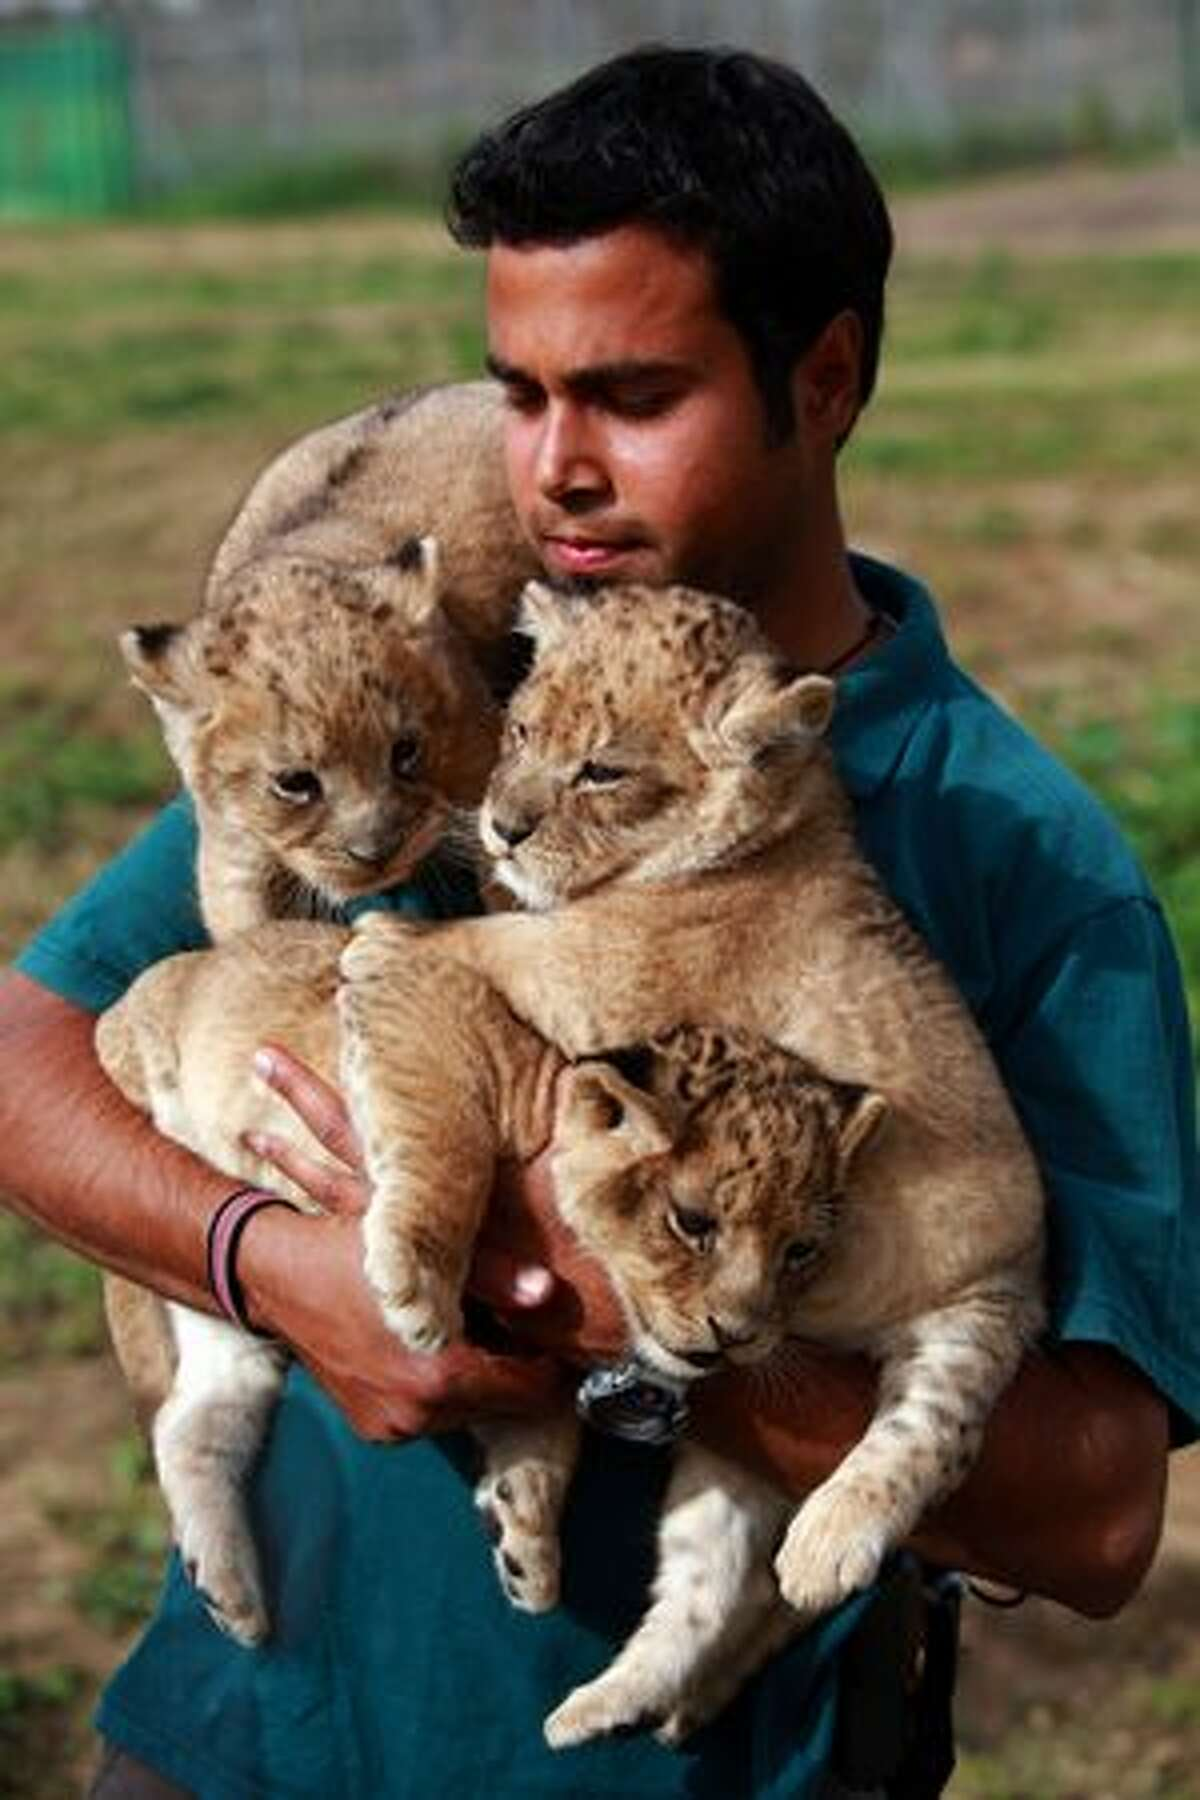 Three one-month-old lioness cubs are held by a keeper as they take their first outing on Sunday, Feb. 21 at the Ramat Gan Safari Park near Tel Aviv, Israel. The still unnamed cubs are the first triplet females to be born at the safari park and officials say their birth will ensure the continuity of the park's pride of lions.